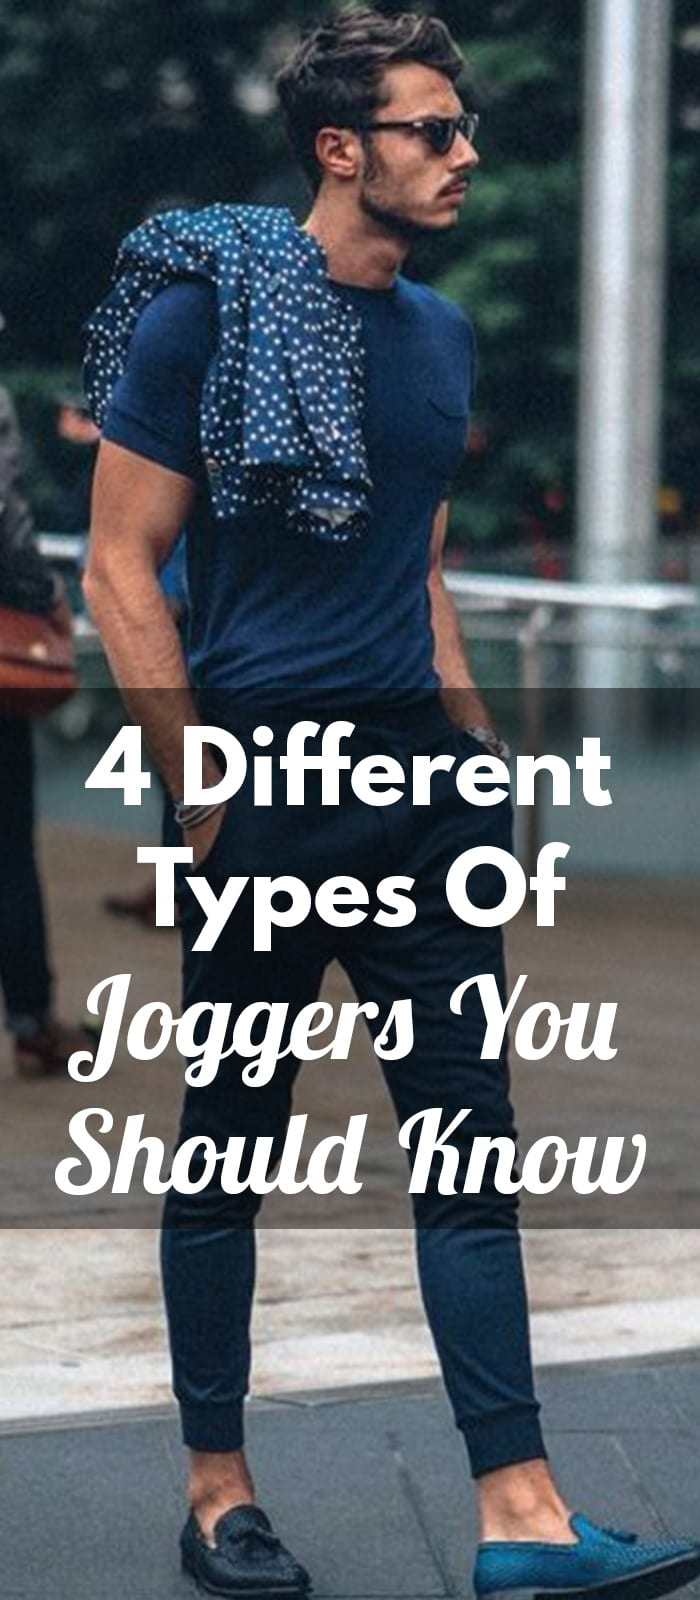 4 Different Types Of Joggers You Should Know